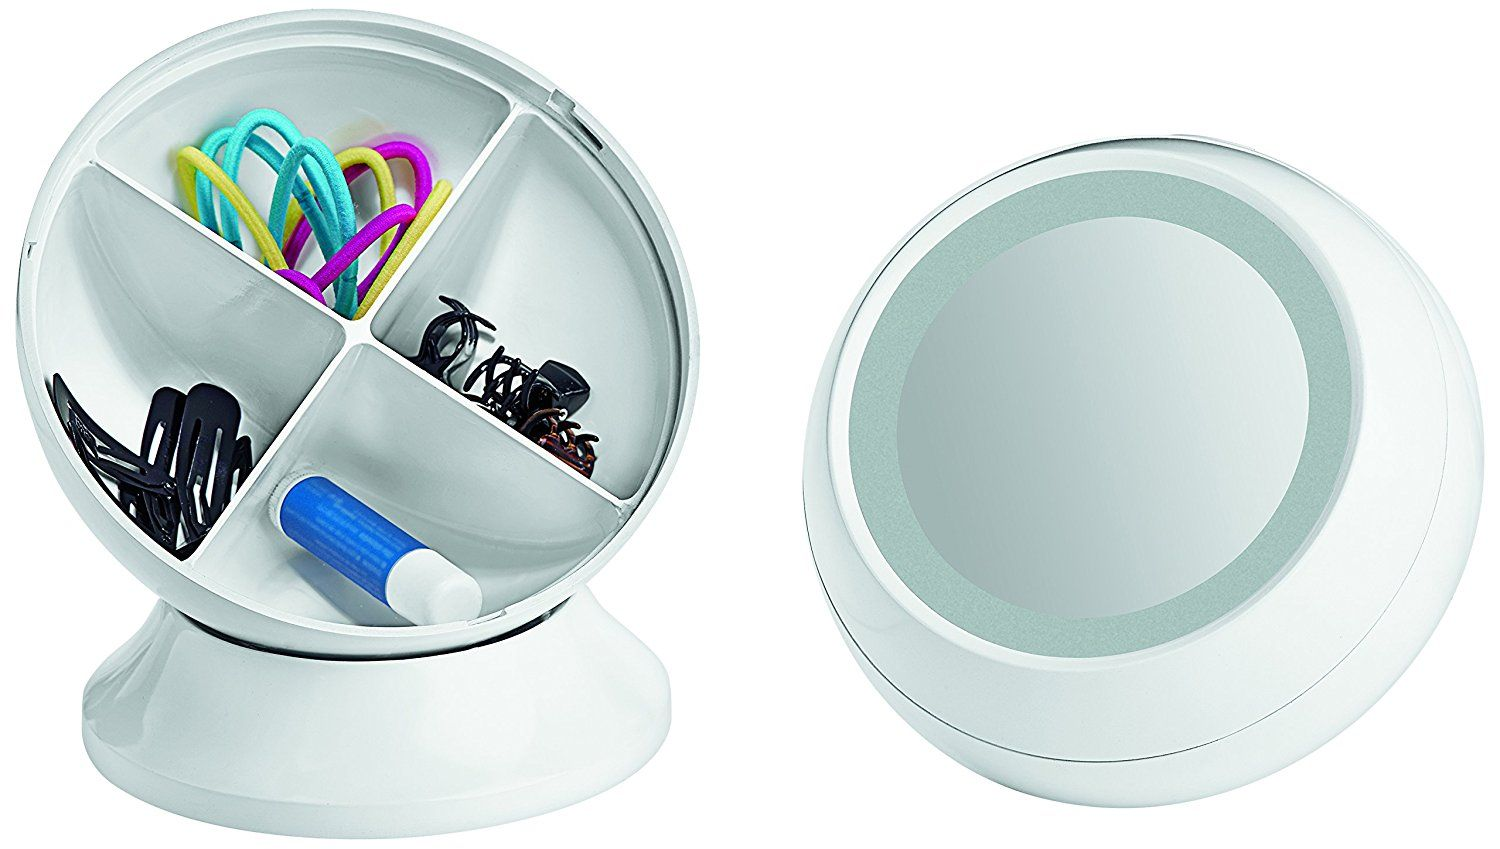 Conair Reflections Storage Collection - Plastic Ball ...